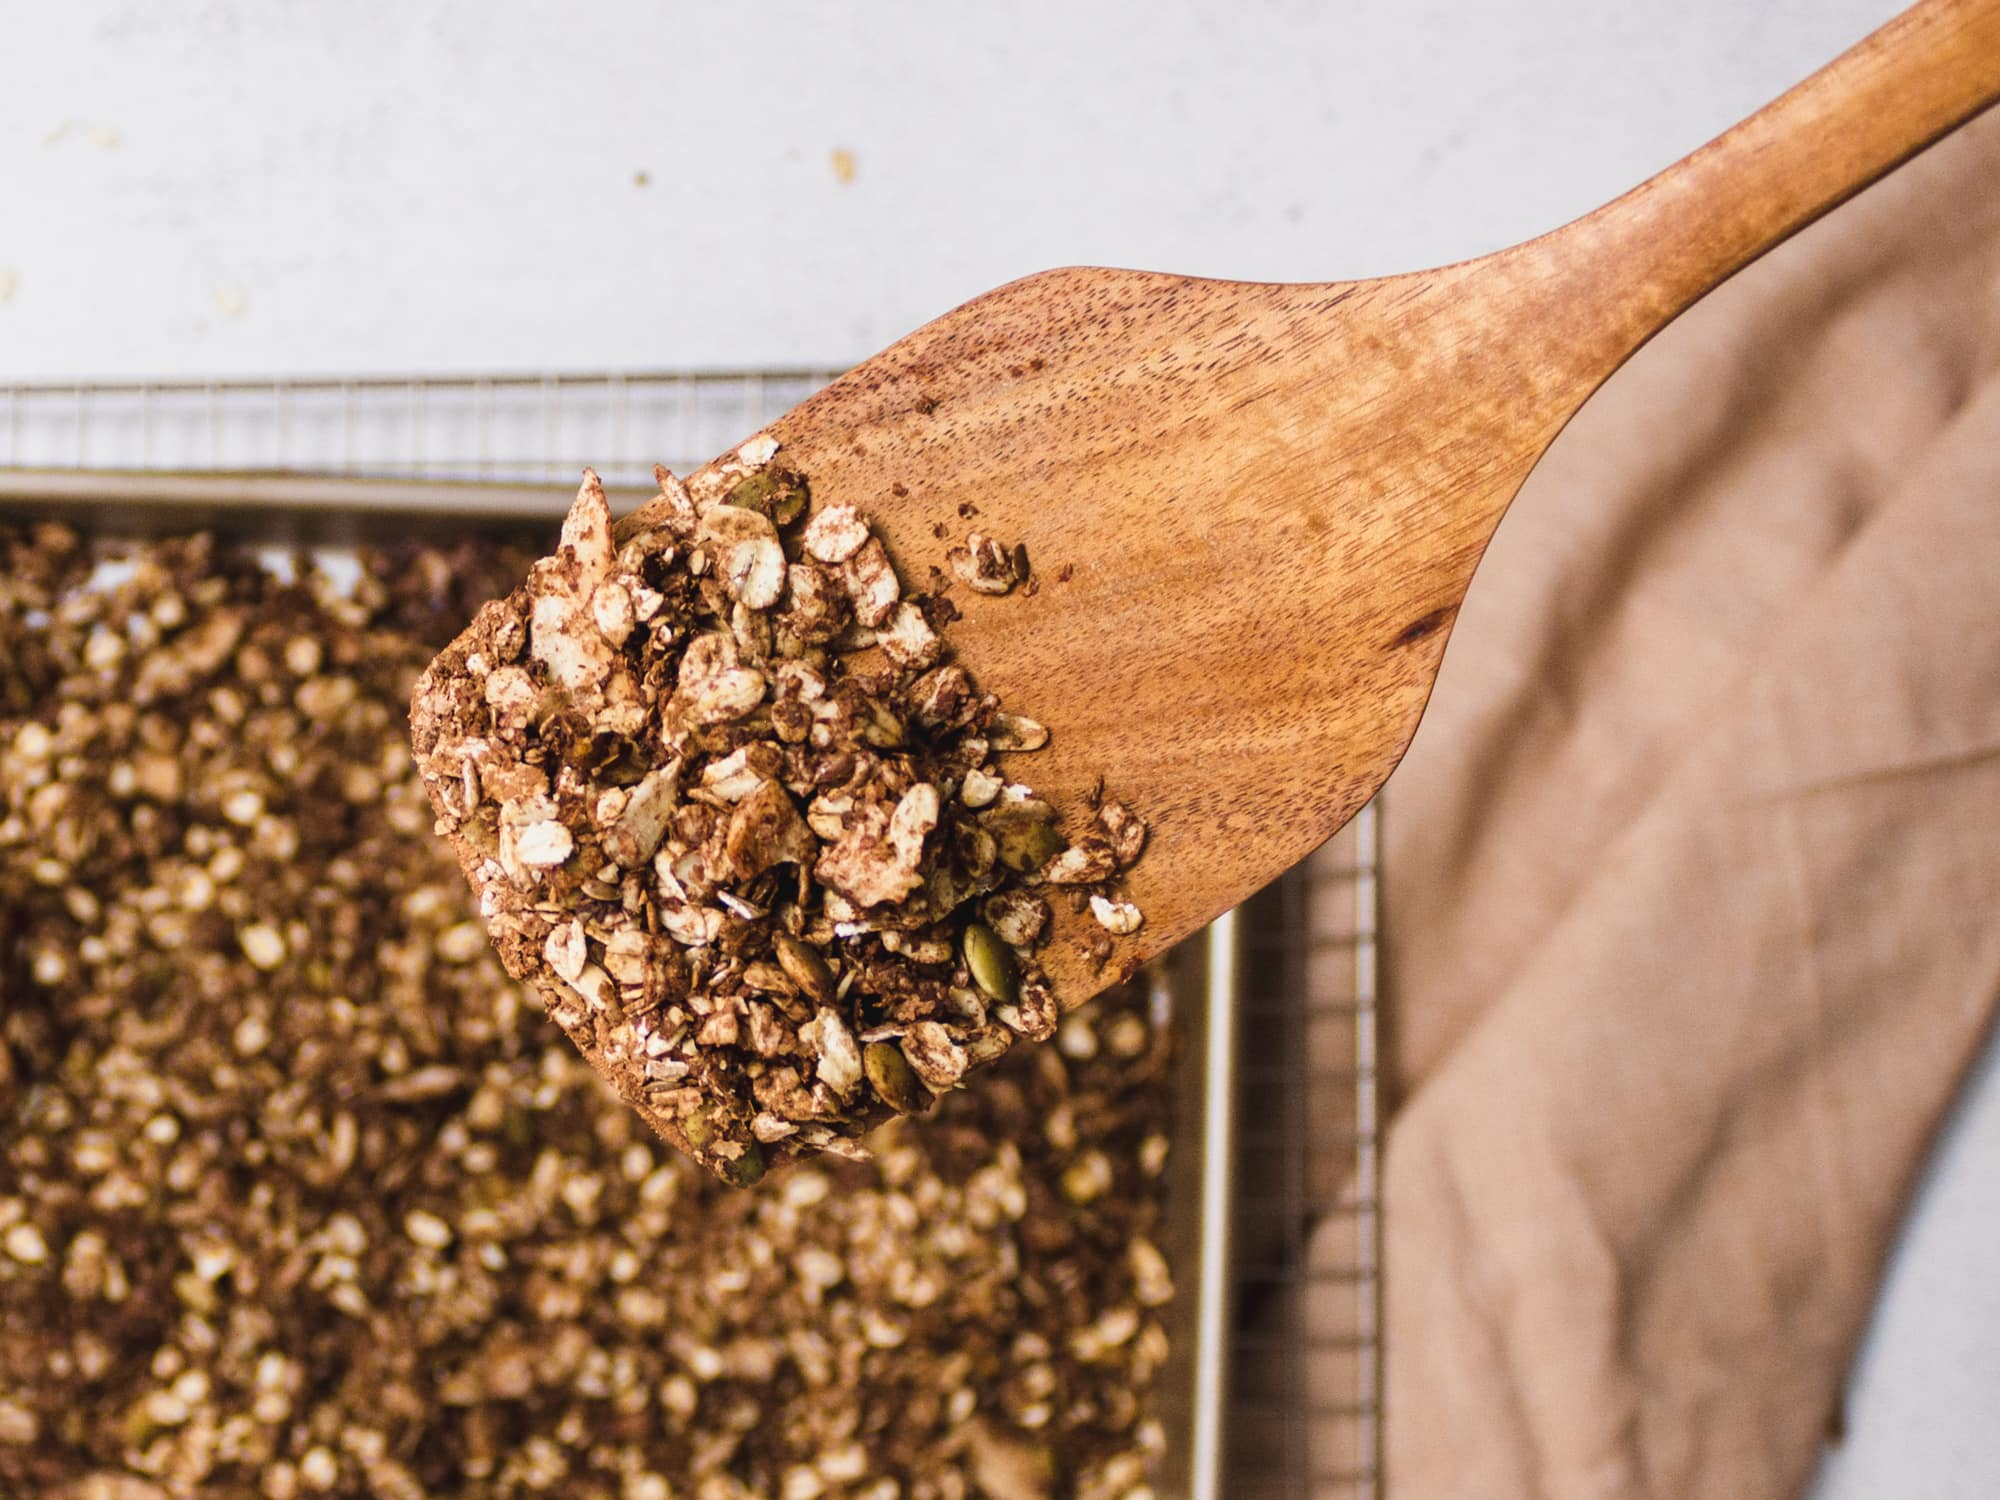 A wooden spoon filled with finished chocolate granola fresh out of the oven. Has a pink napkin in the background.